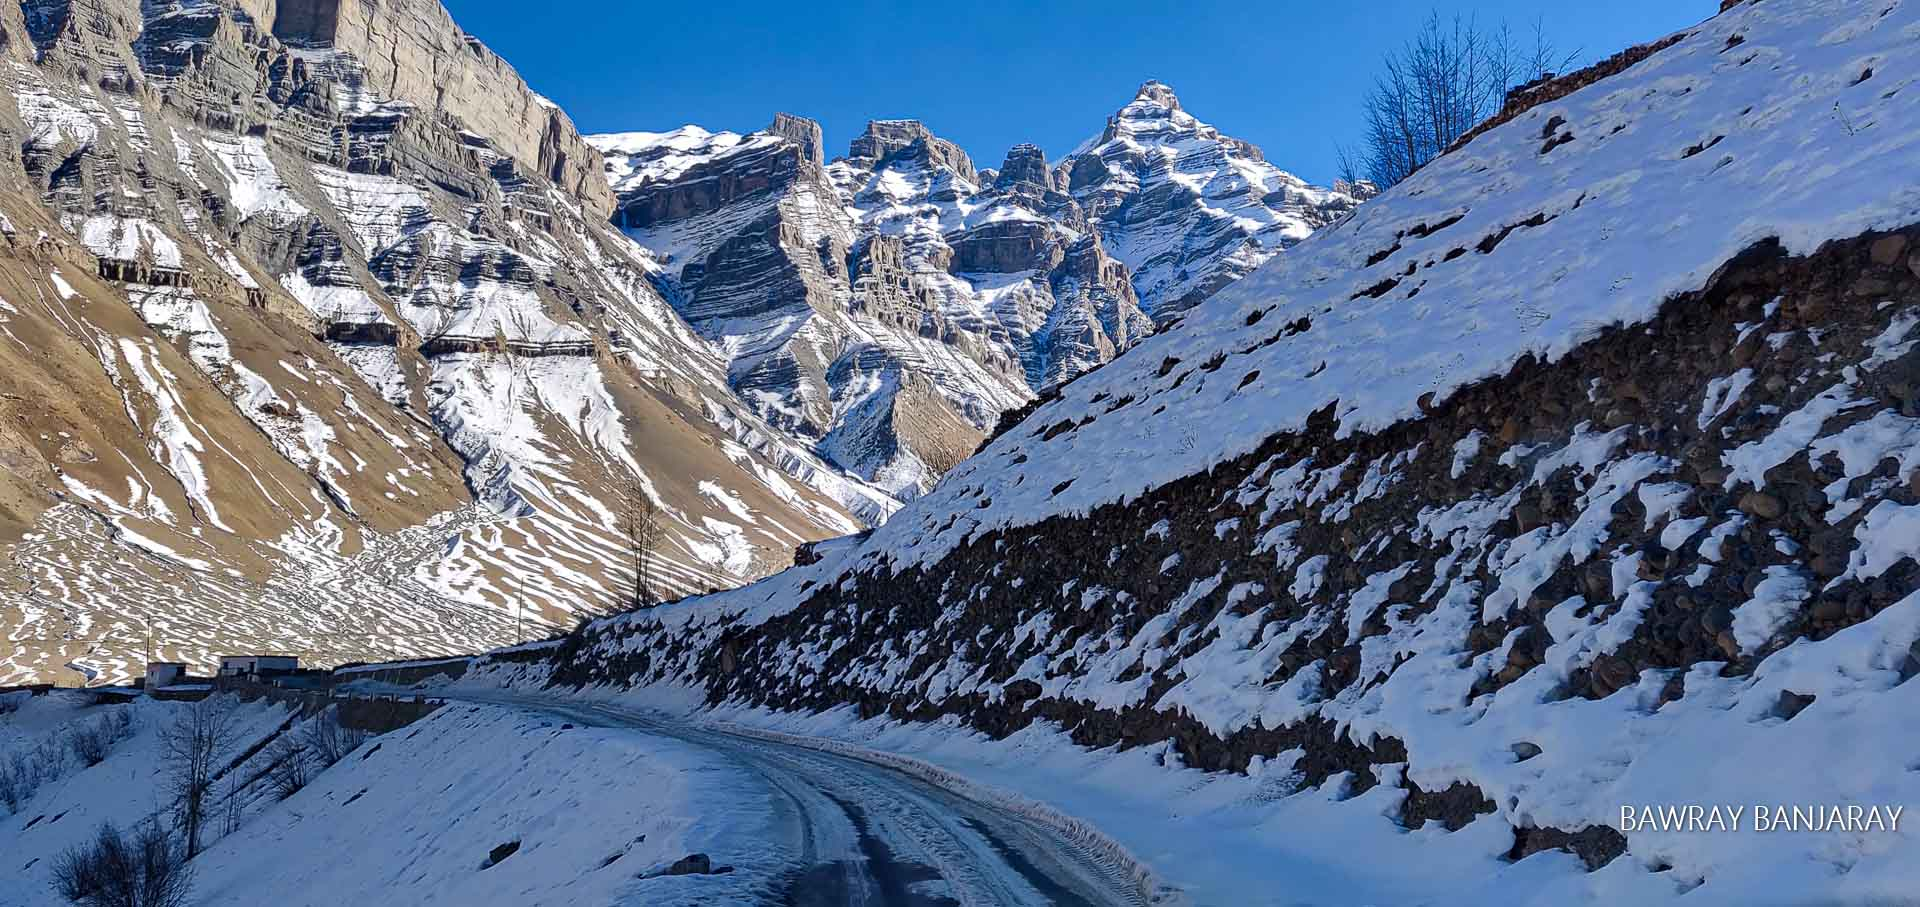 Icy roads of Winter Spiti